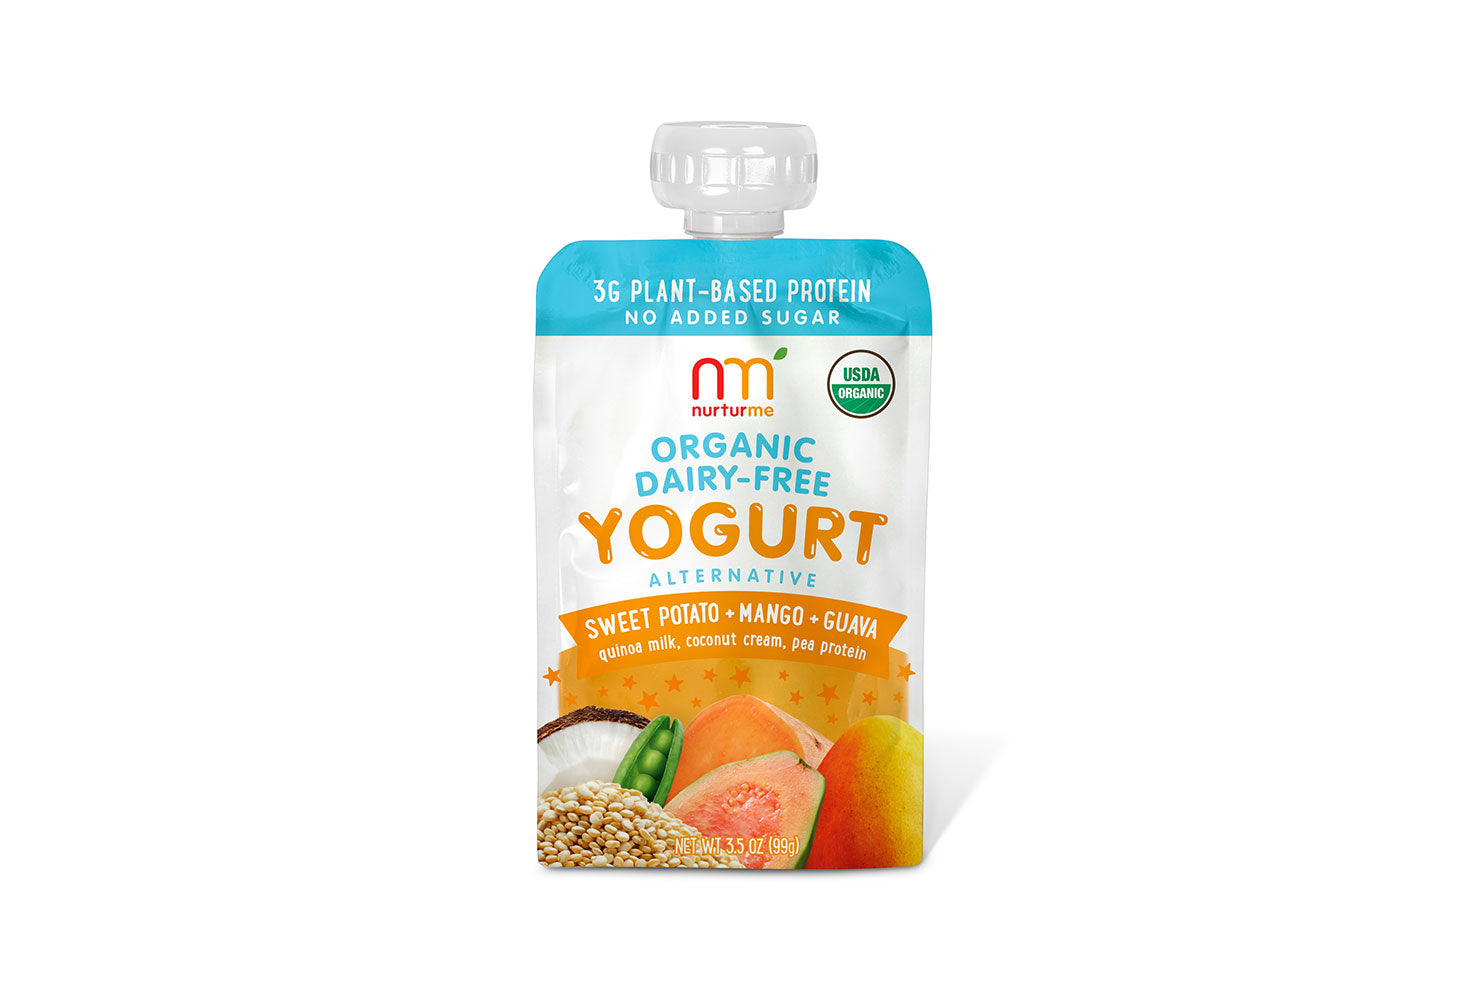 Dairy-Free Yogurt Alternative: Sweet Potato, Mango and Guava